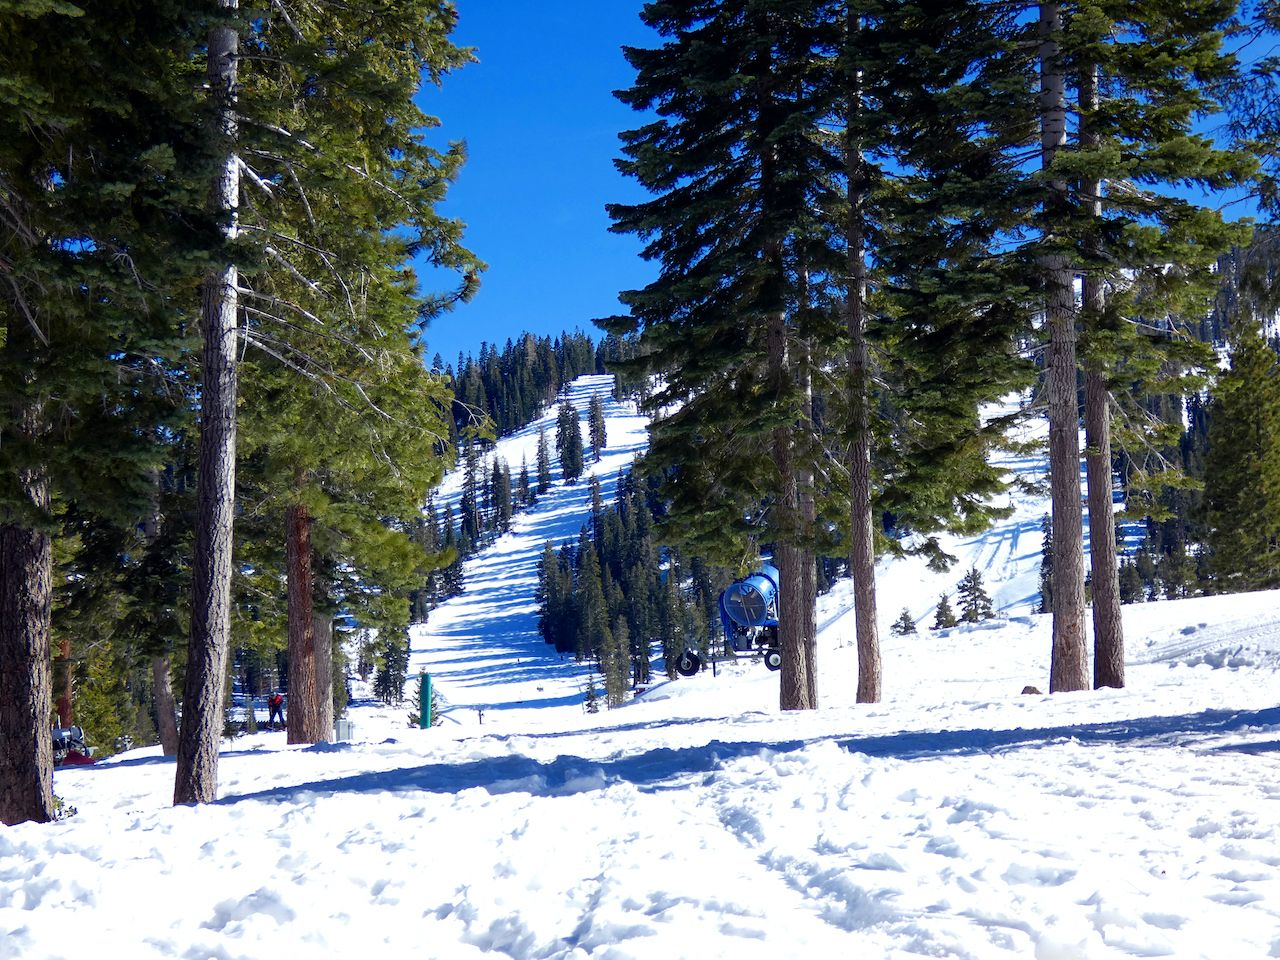 ski slopes and trees